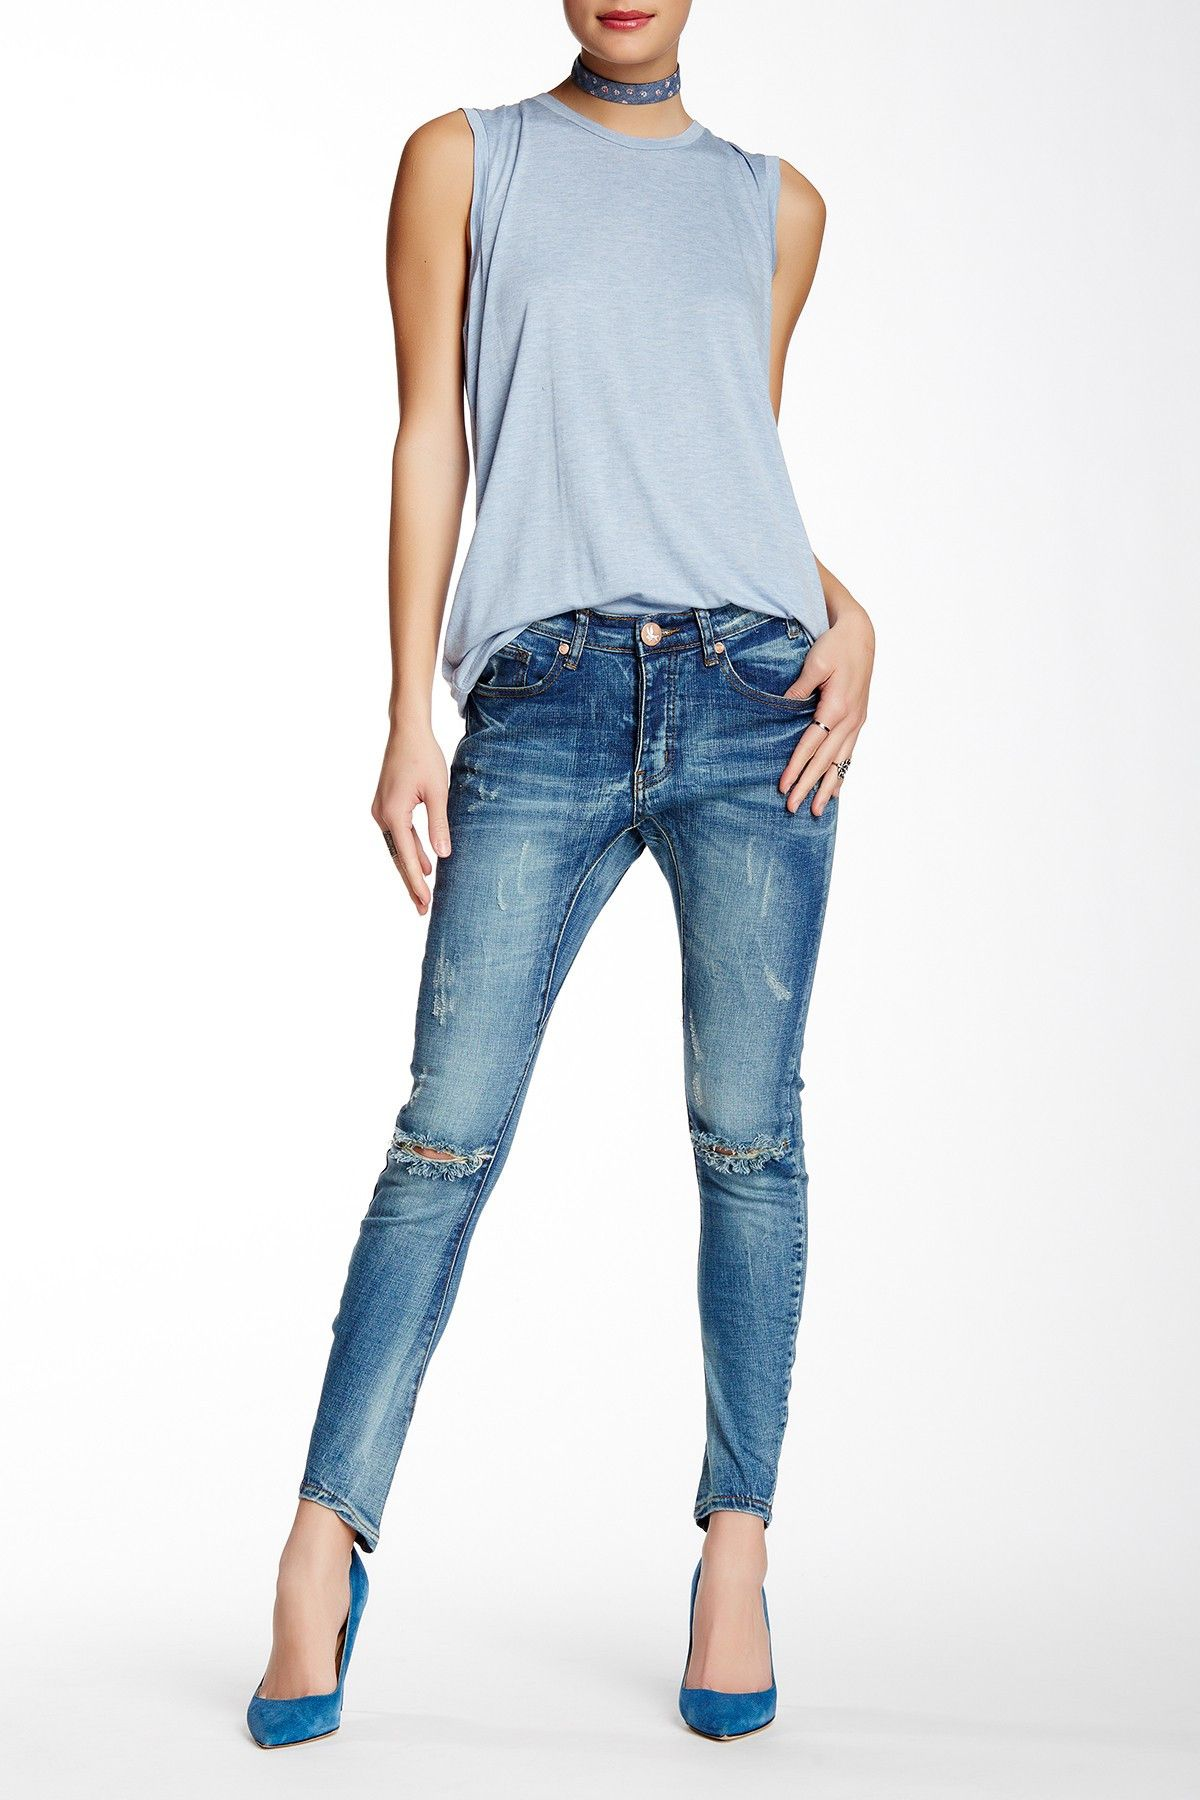 Shades Of Blue One Teaspoon Distressed Desperados Jeans Women Jeans Fashion Clothes